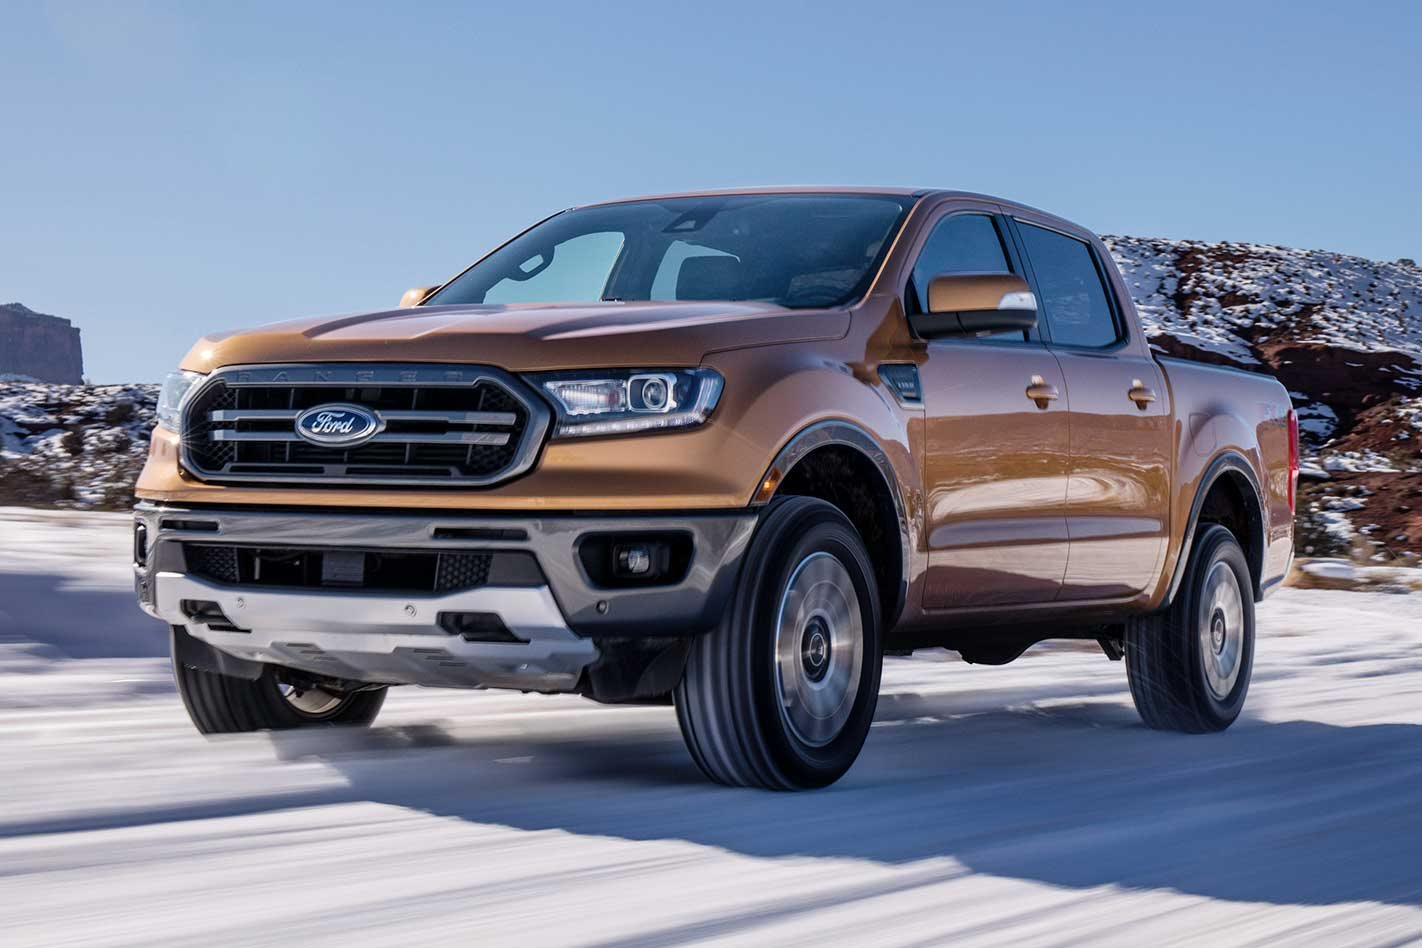 Ford Ranger sales are struggling in the US